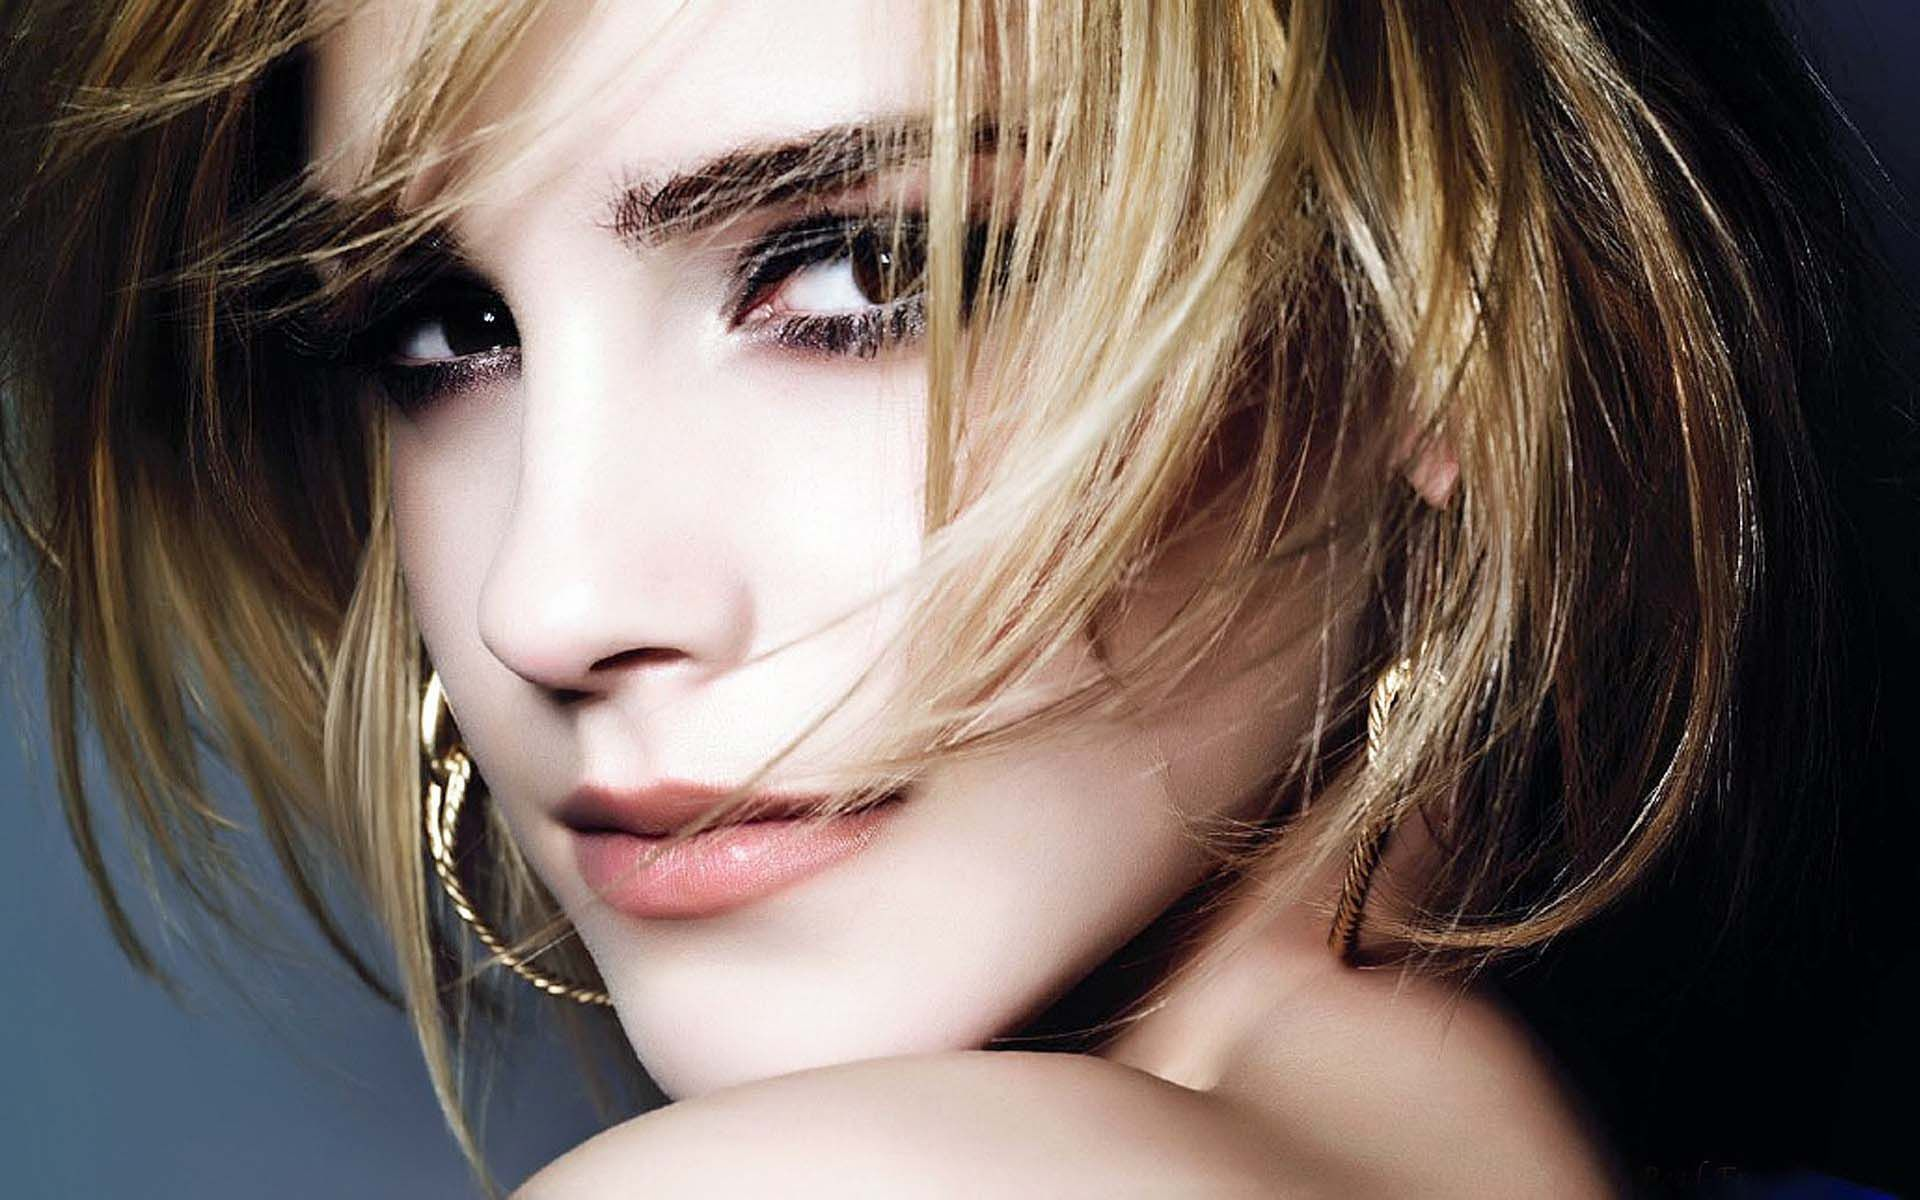 emma watson hd images - free download latest emma watson hd images